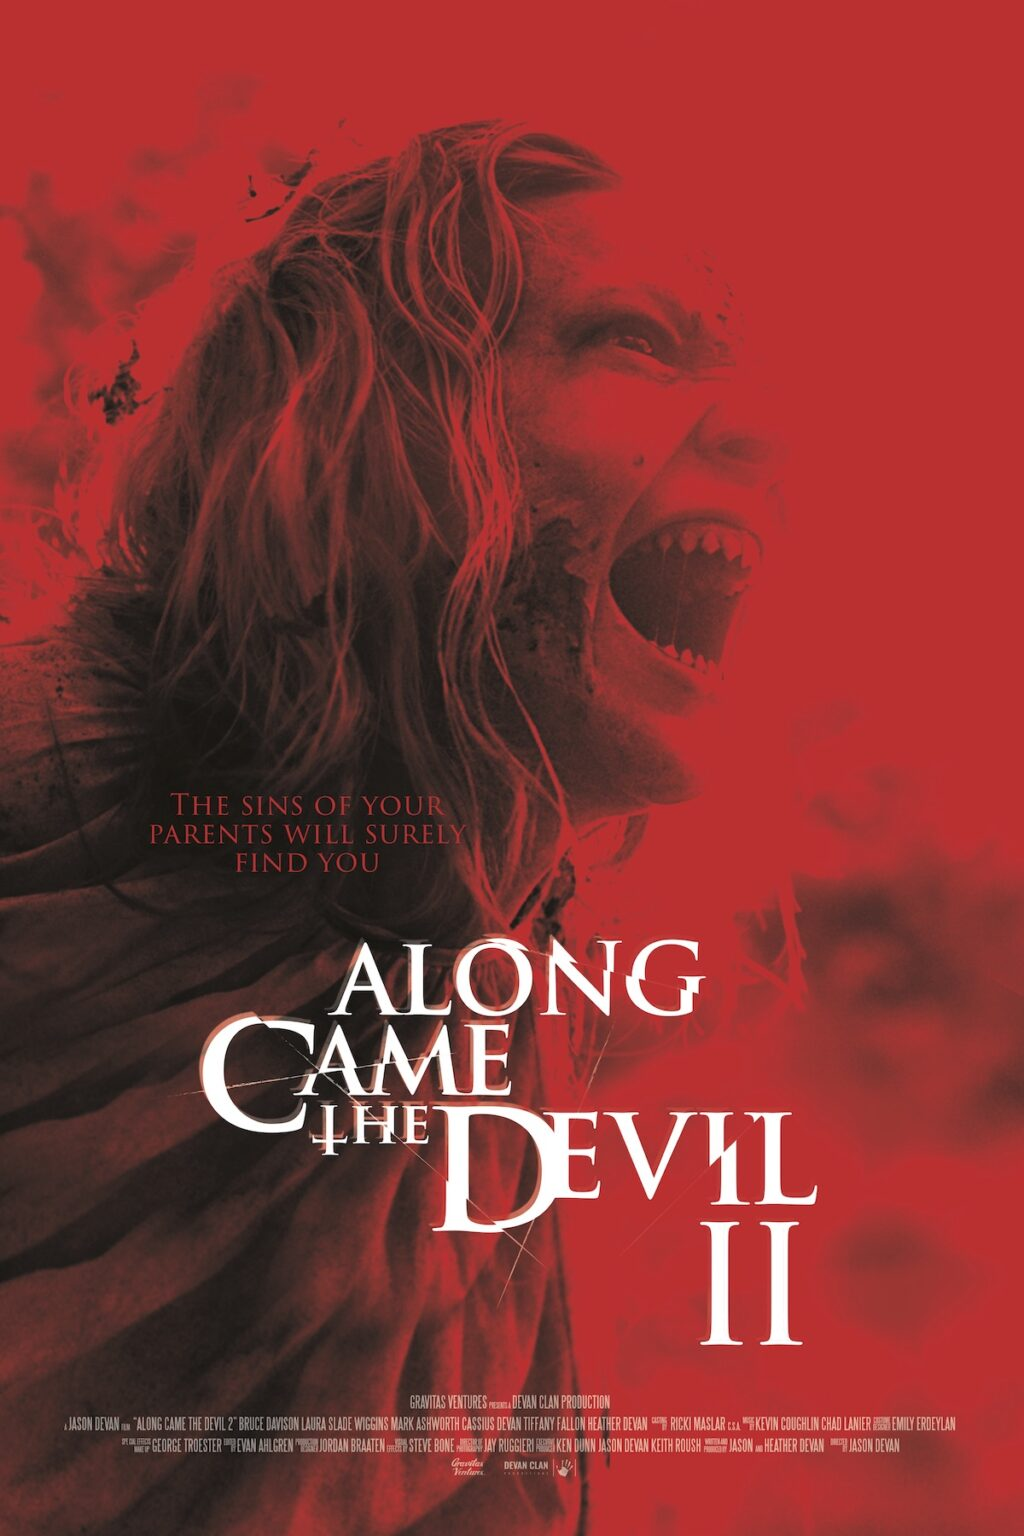 AlongCameTheDevil2poster 1024x1536 - Exclusivo ALONG CAME THE DEVIL 2 Trailer and Poster